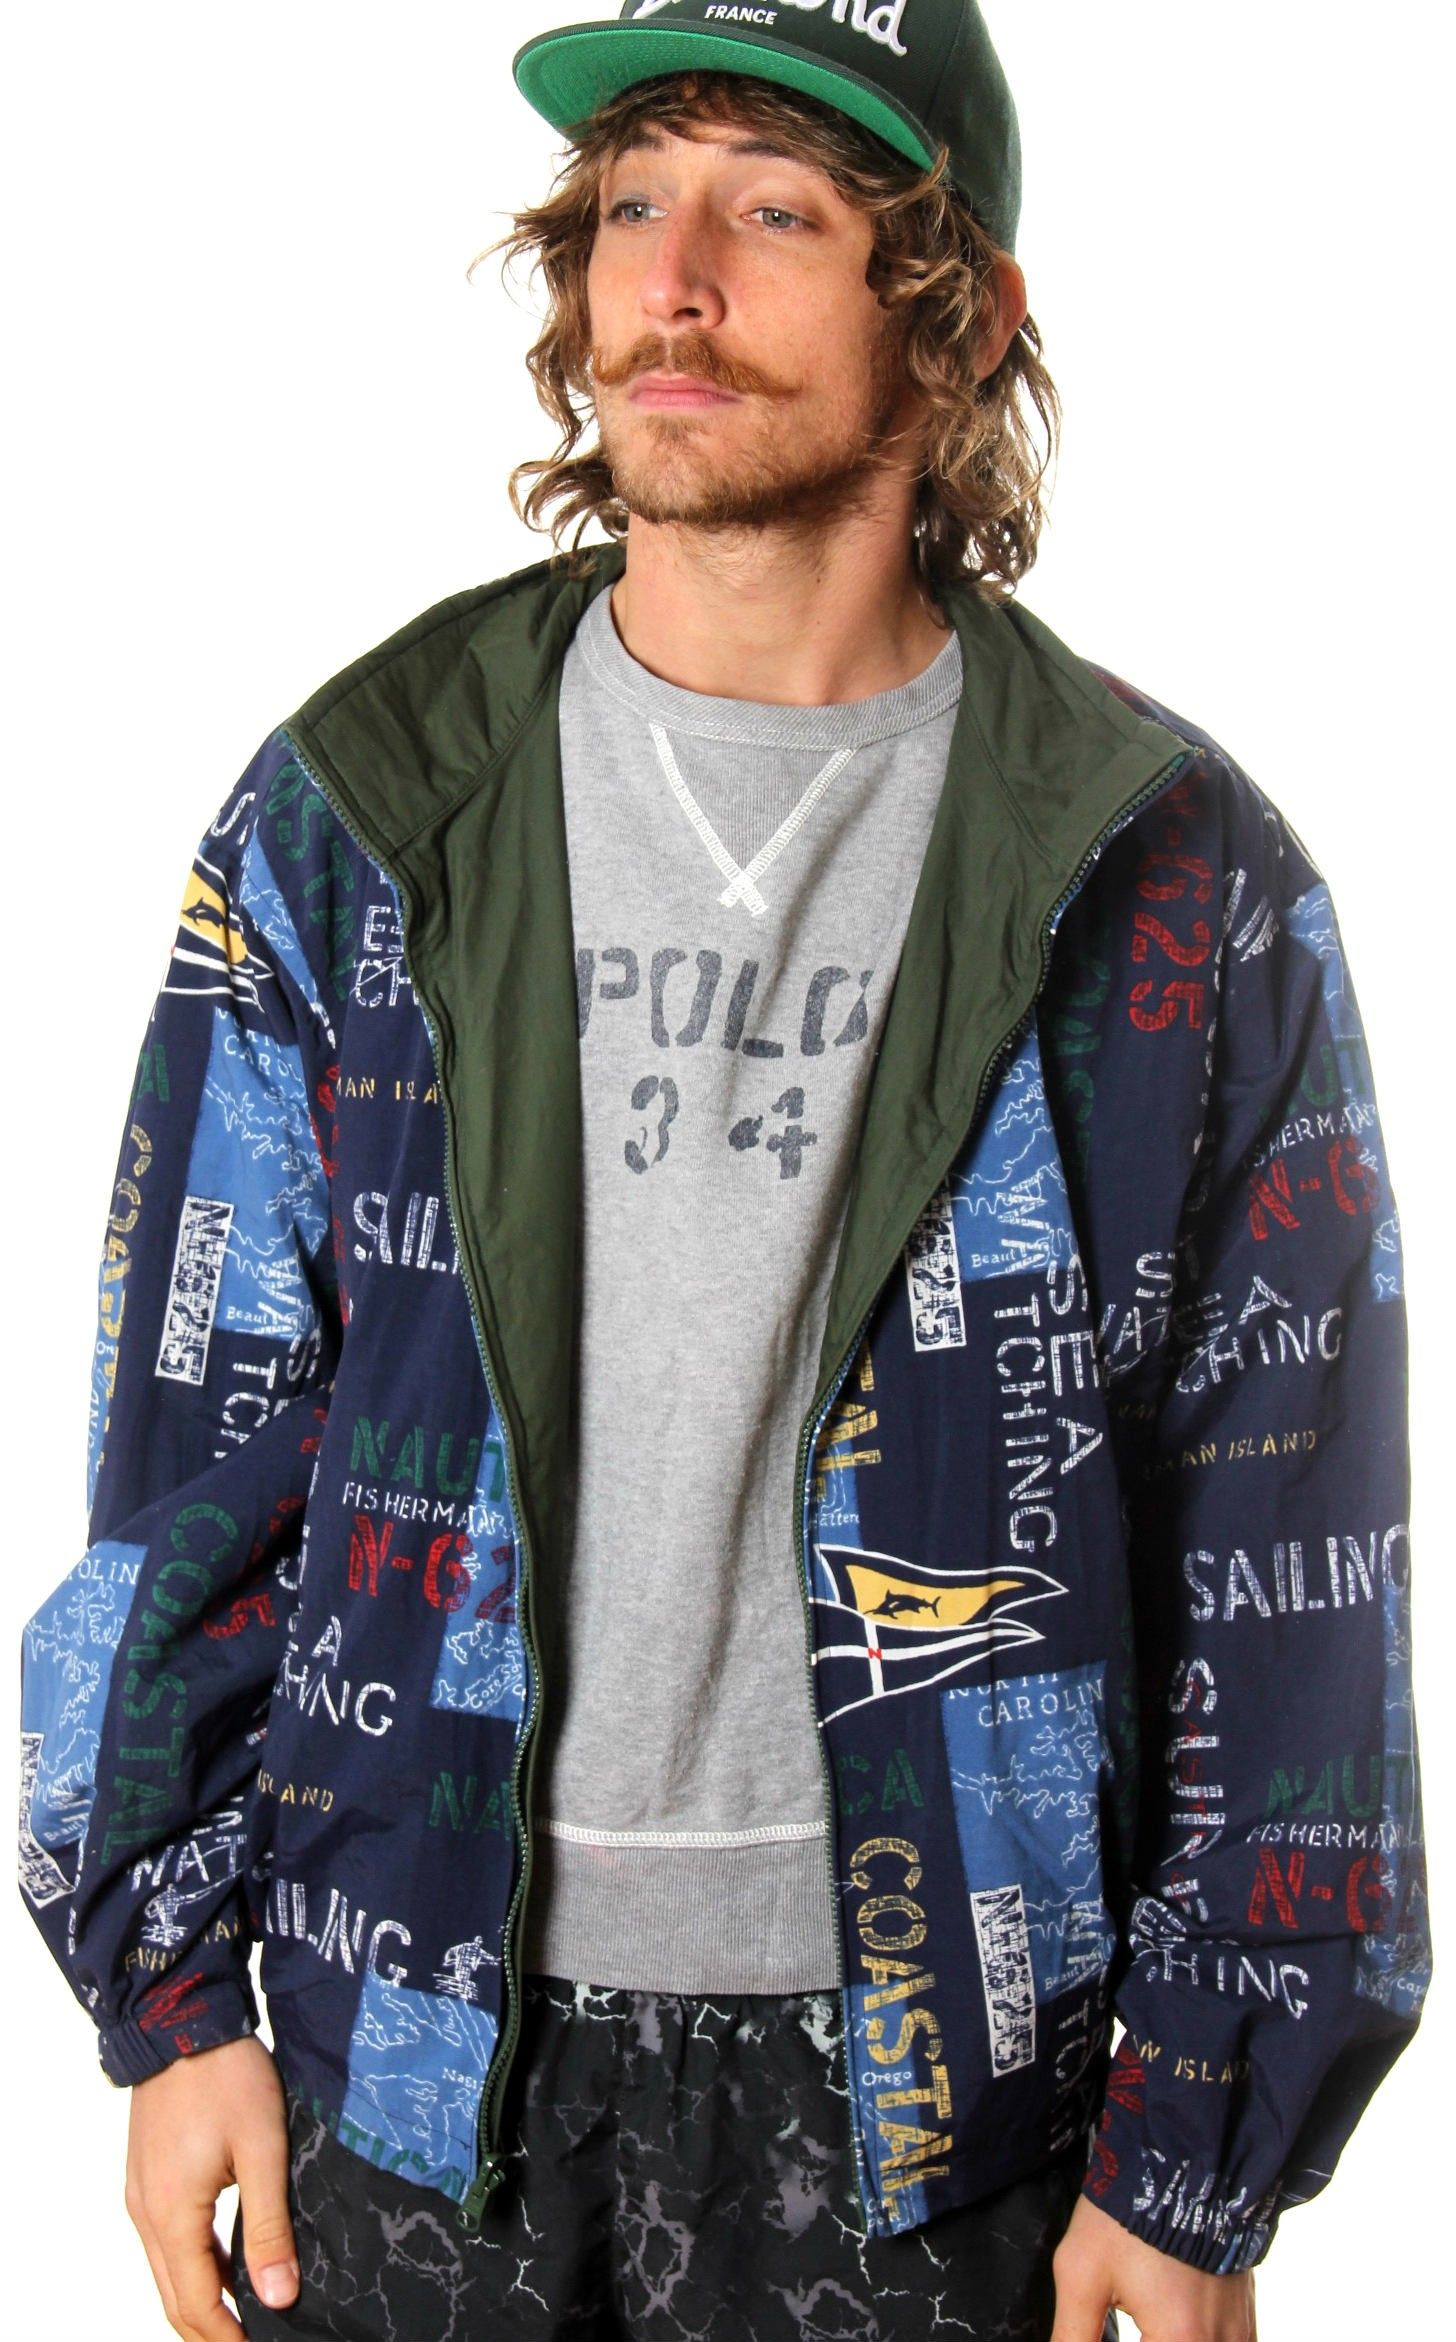 9982a39298 VINTAGE NAUTICA FISHERMAN REVERSIBLE ALL OVER PRINT JACKET | Fly ...